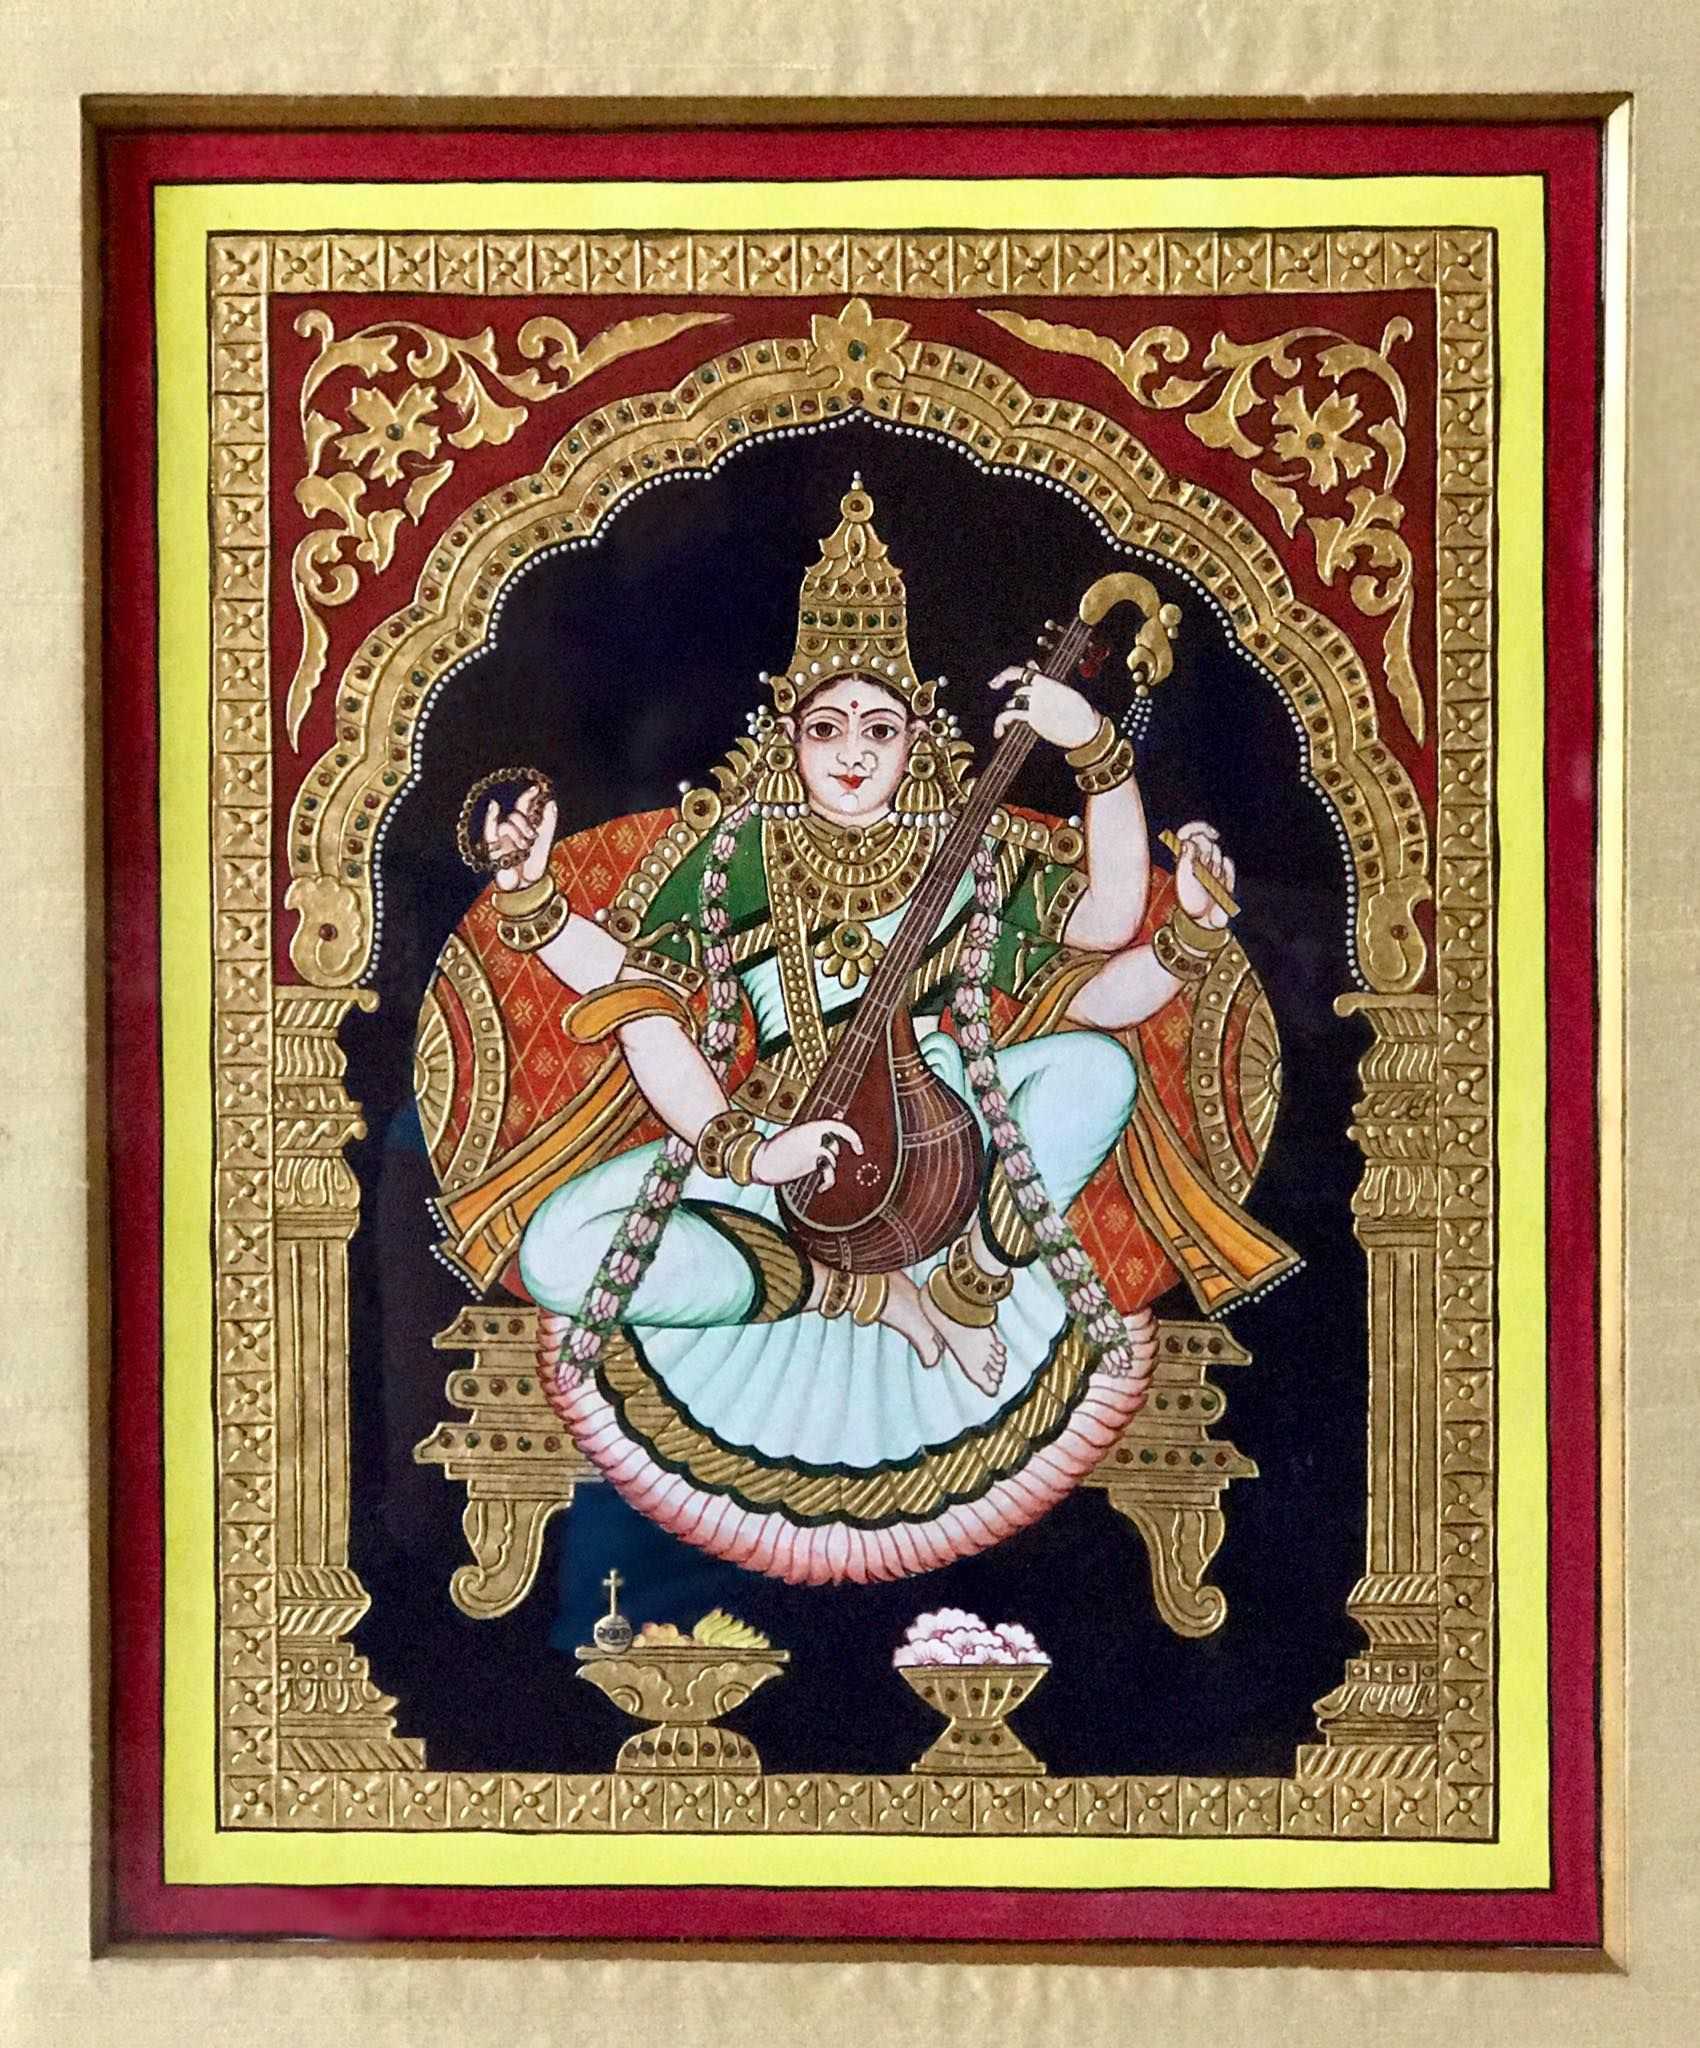 Tanjore Painting, Mysore